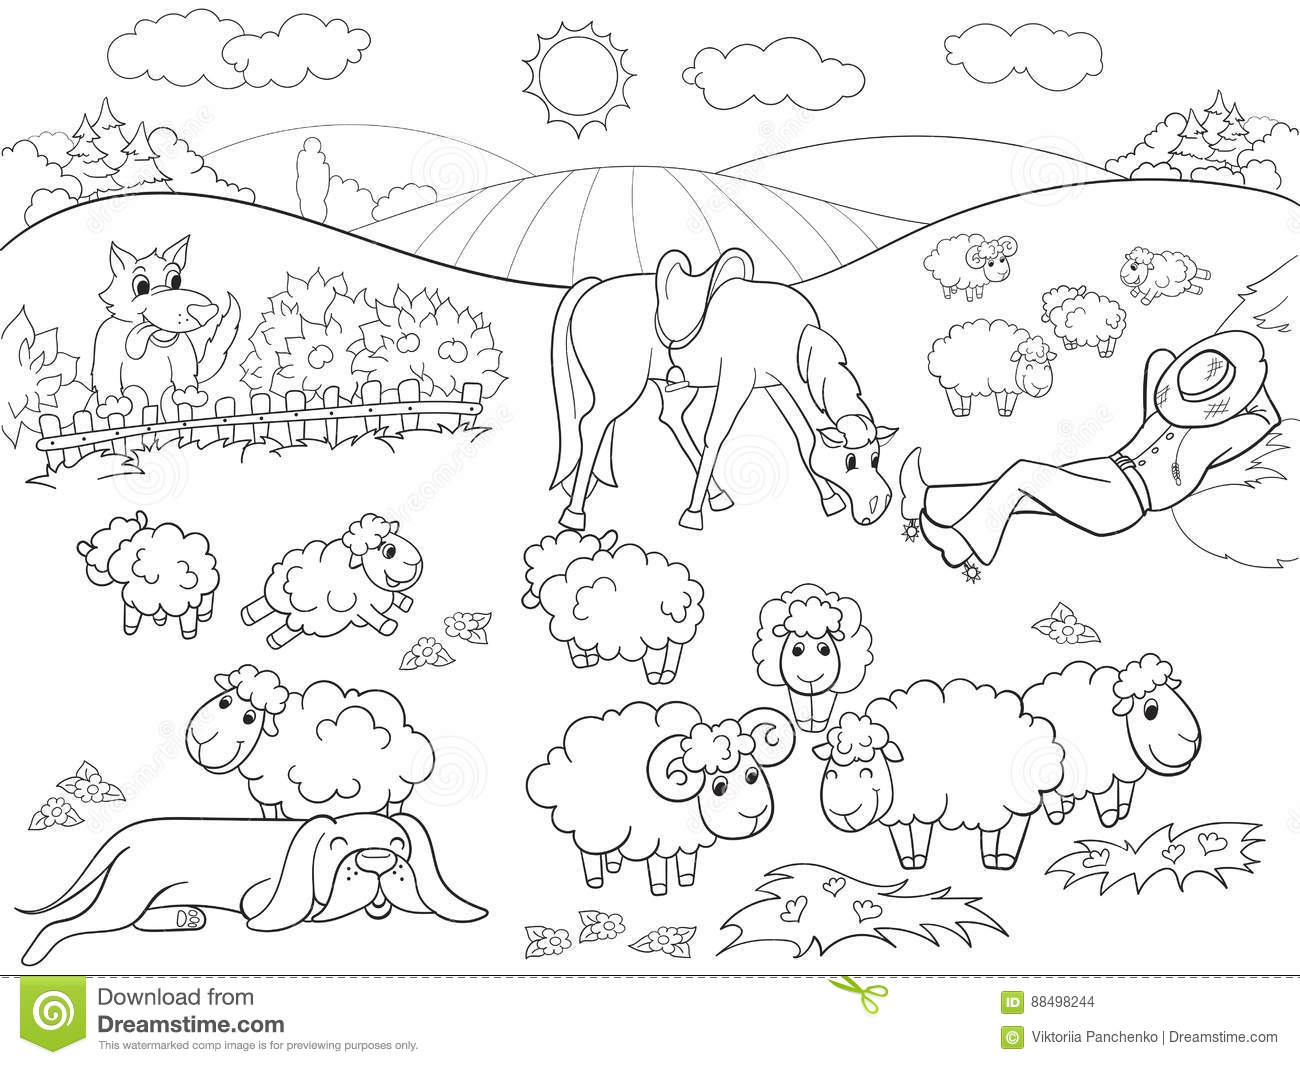 sheep and dogs coloring pages - photo#17